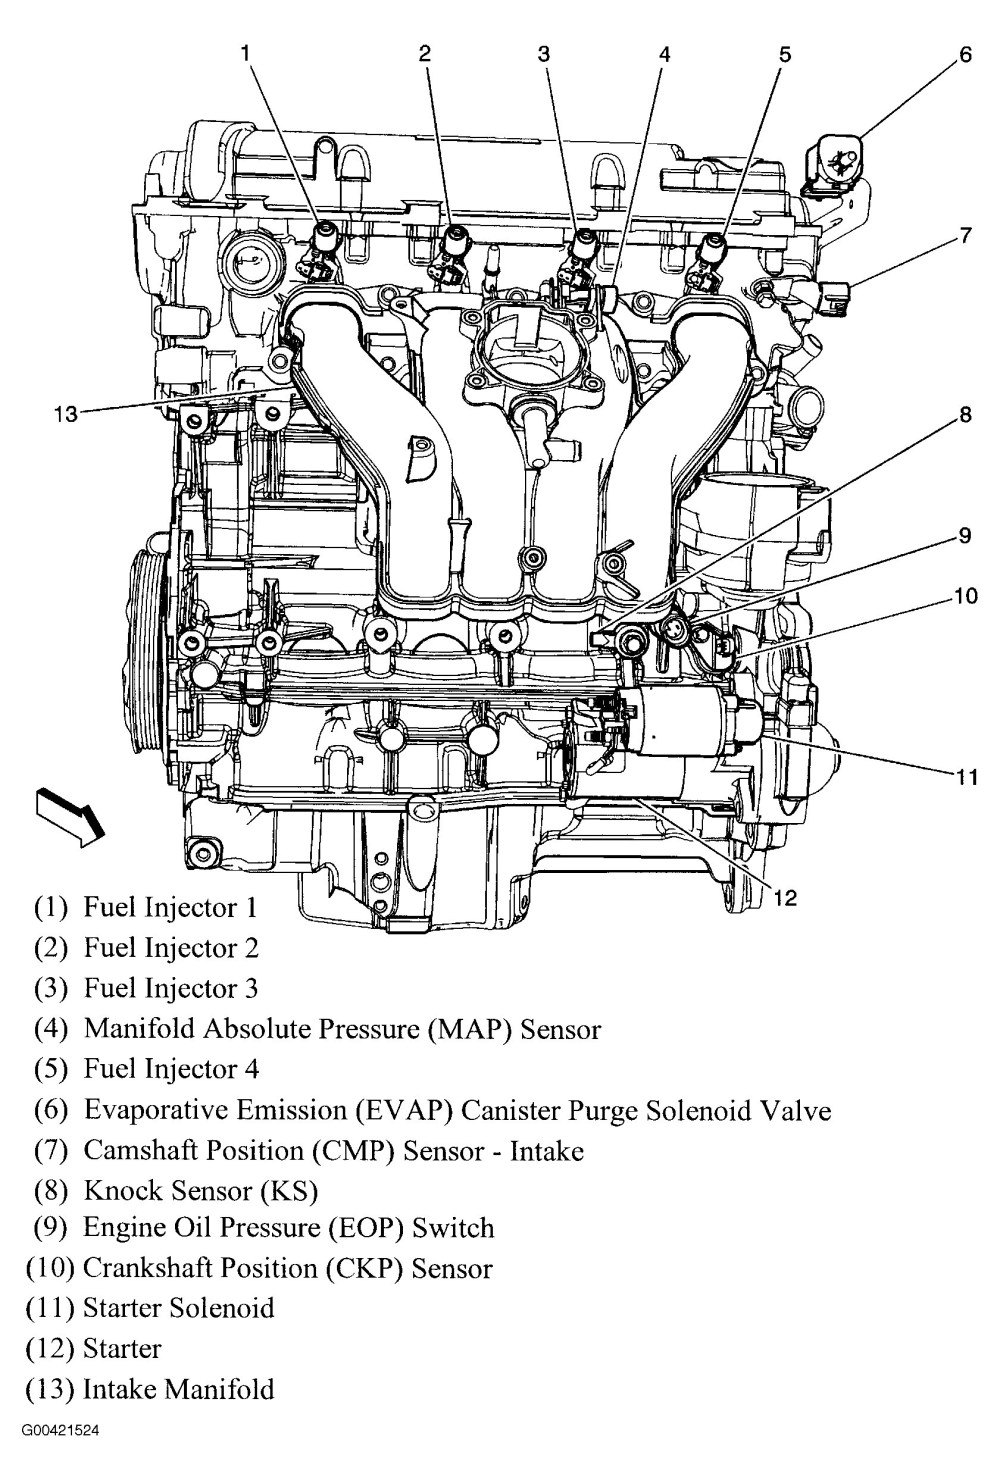 medium resolution of  medium resolution of 2003 chevy impala engine 3400 diagram